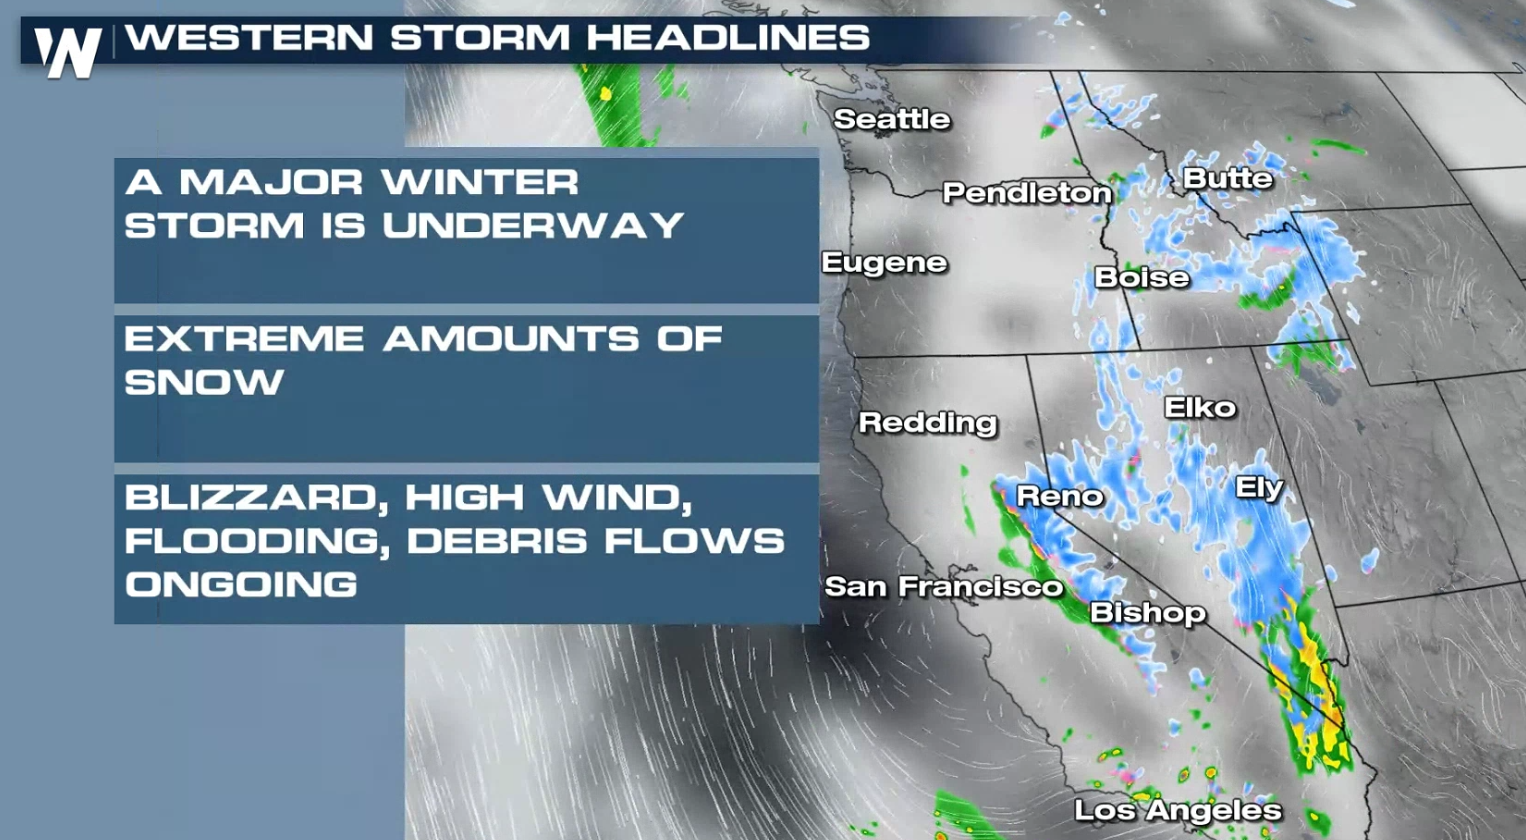 Potent Storm Hitting the West with Heavy Rain and Snow